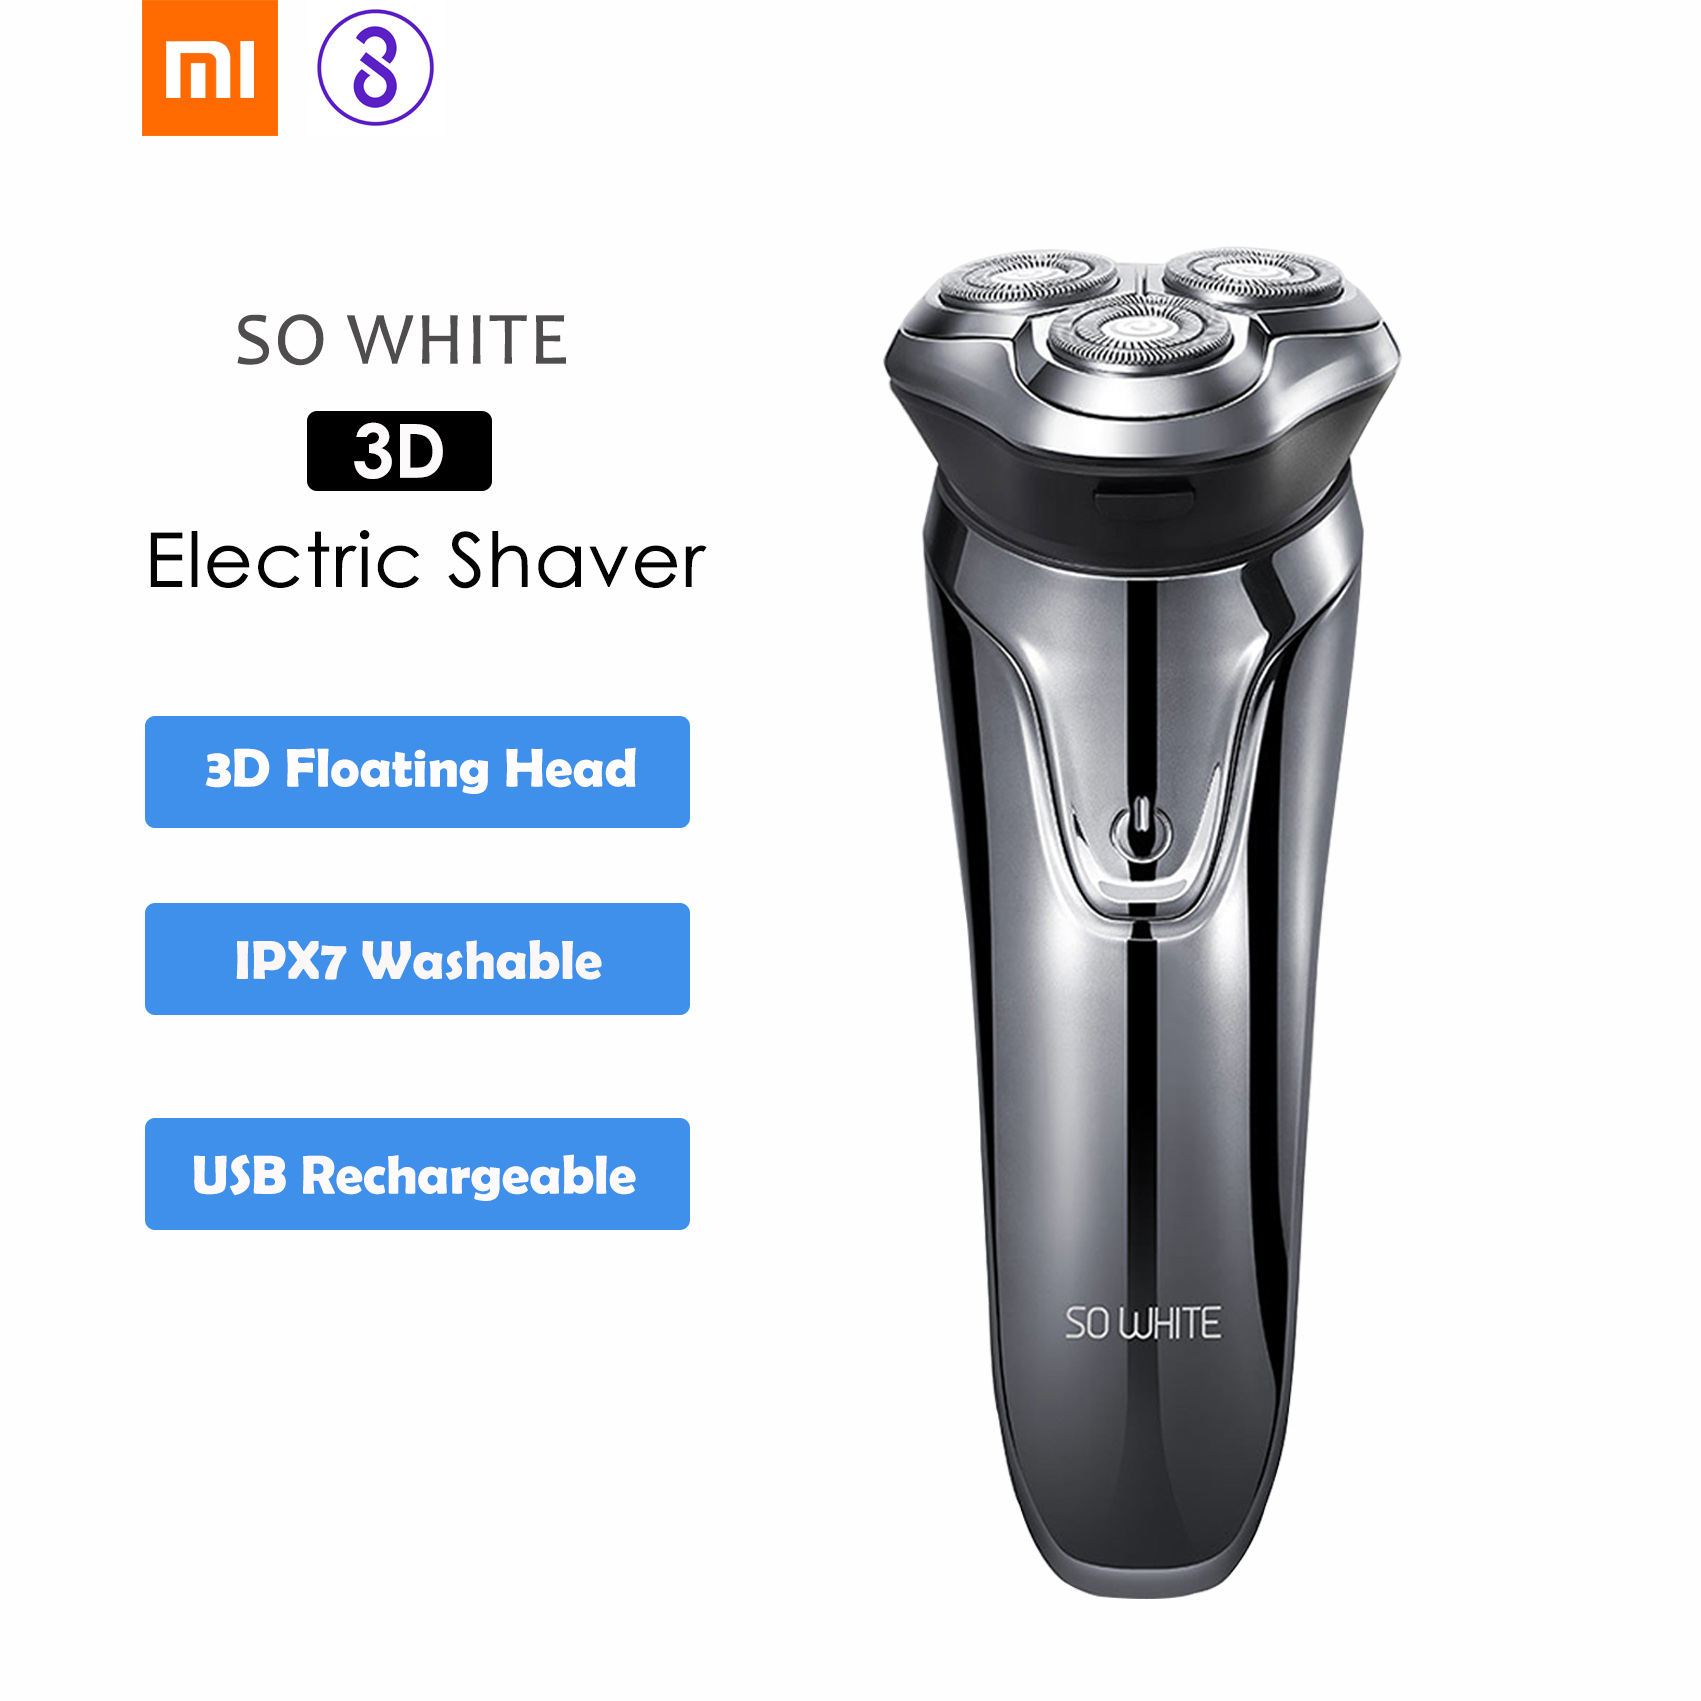 Soocas SO WHITE ES3 Electric Shaver Razor Washable USB Rechargeable Wireless 3D Smart Control Shaving Machines For Men